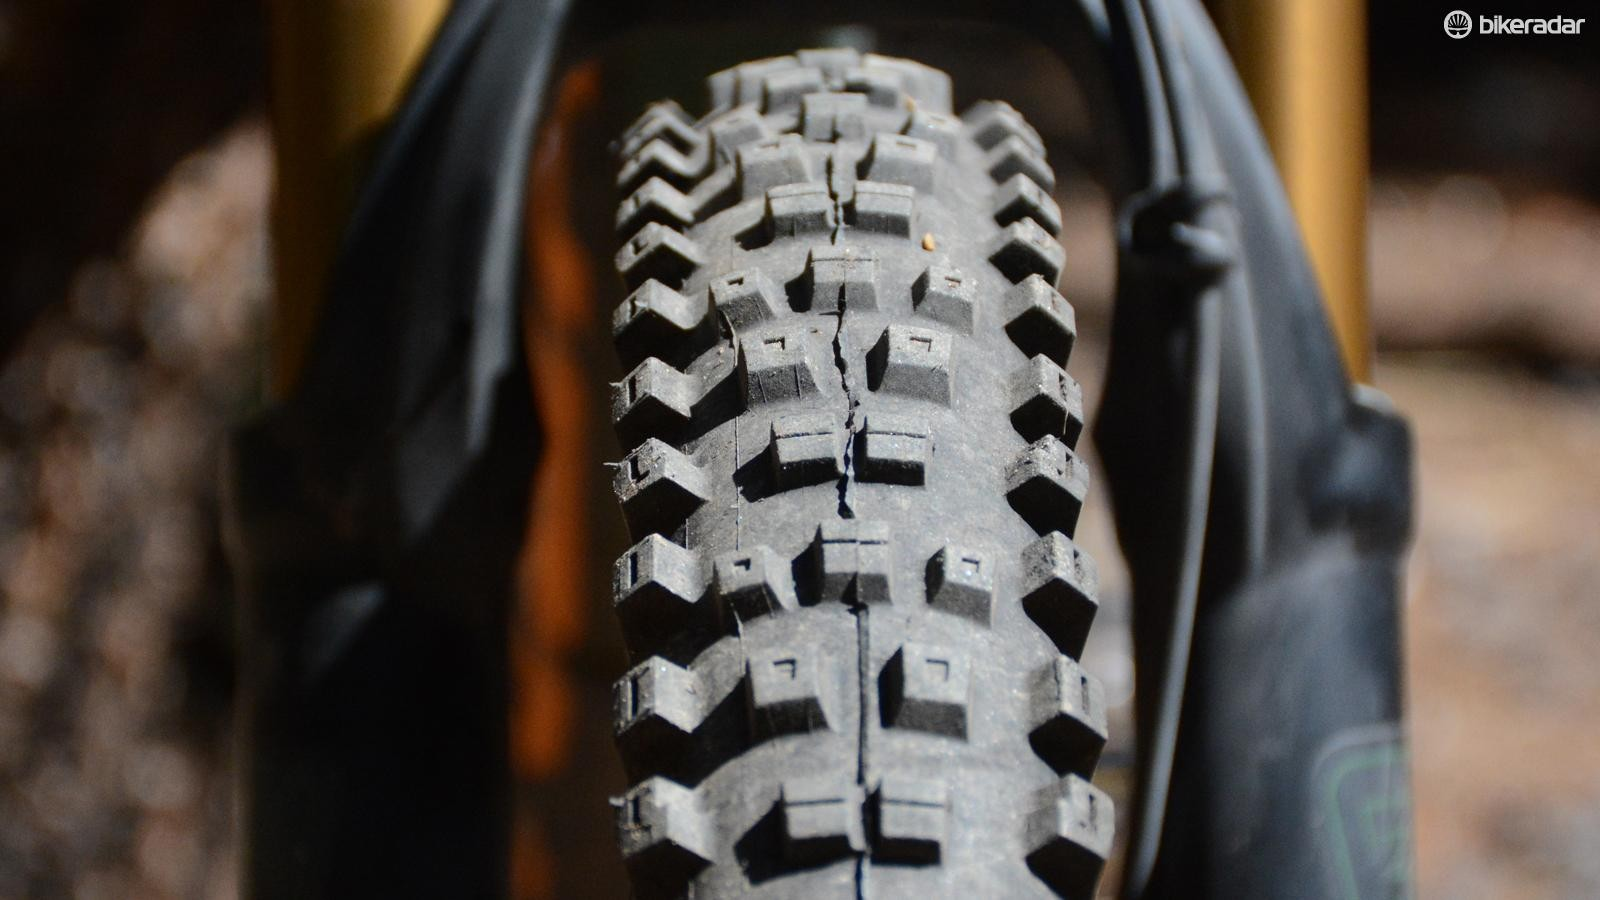 Kenda's new Hellkat Pro is a gravity tire with the company's Advanced Gravity casing